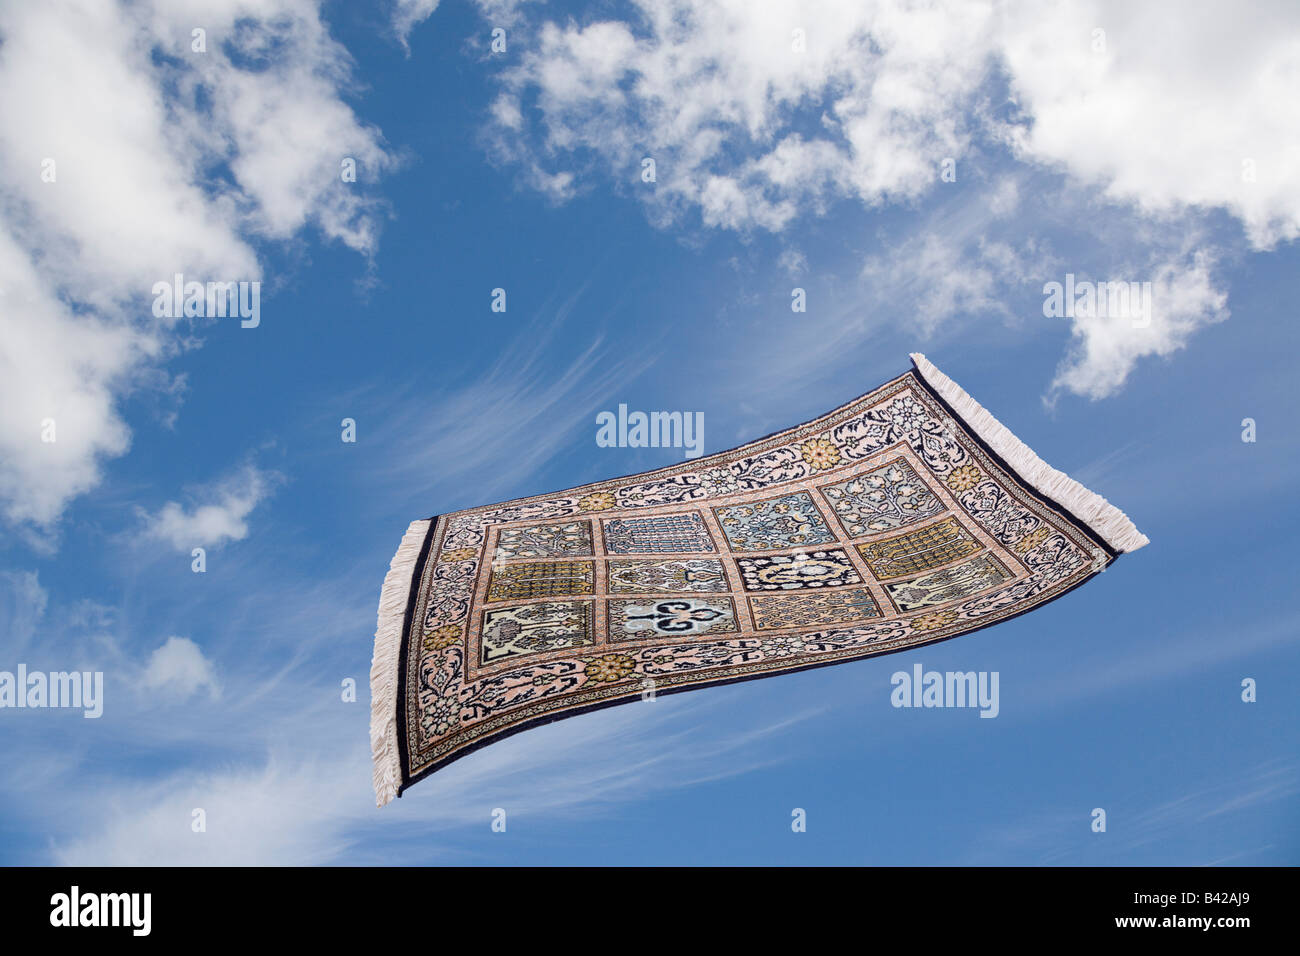 Magic Carpet Flying Across Blue Sky With White Clouds